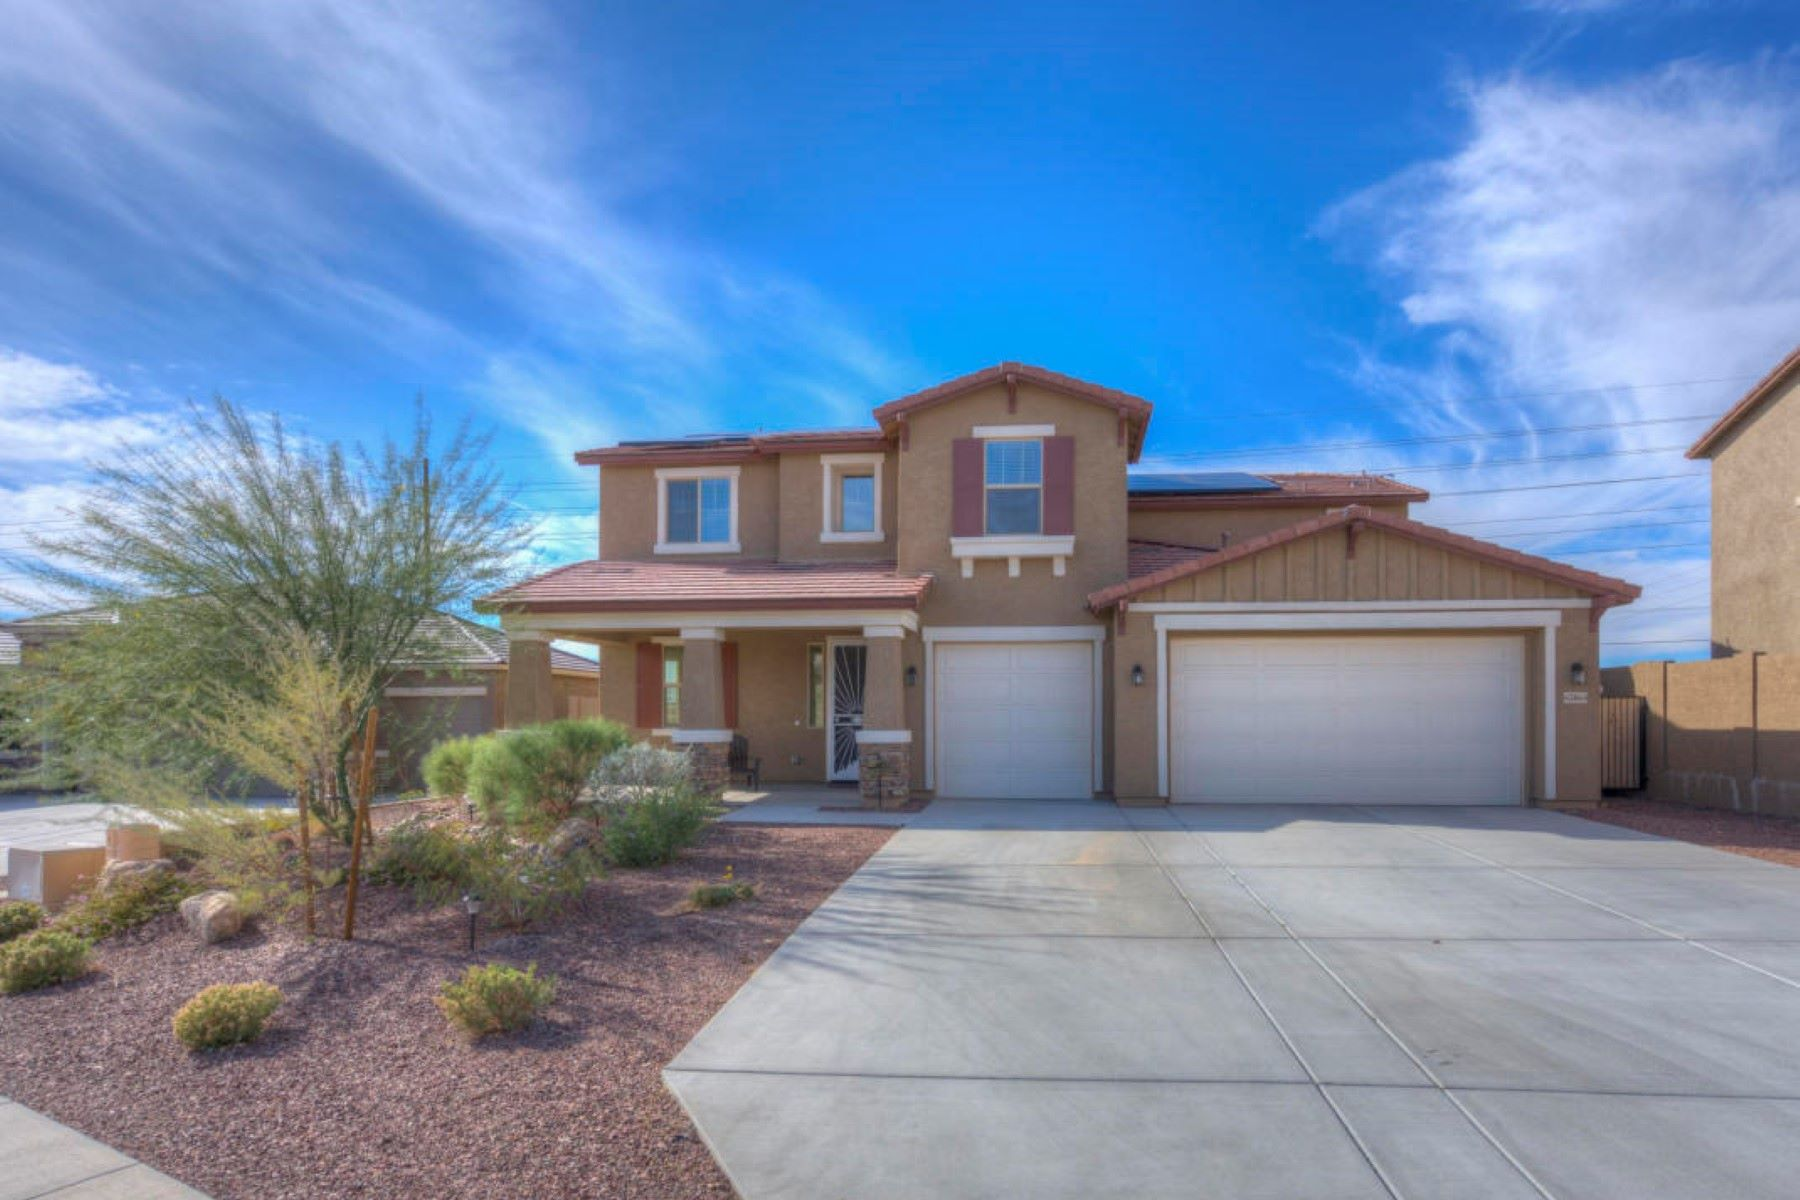 Single Family Home for Sale at Immaculate Craftsman Style Home 43864 N Hudson TRL New River, Arizona 85087 United States